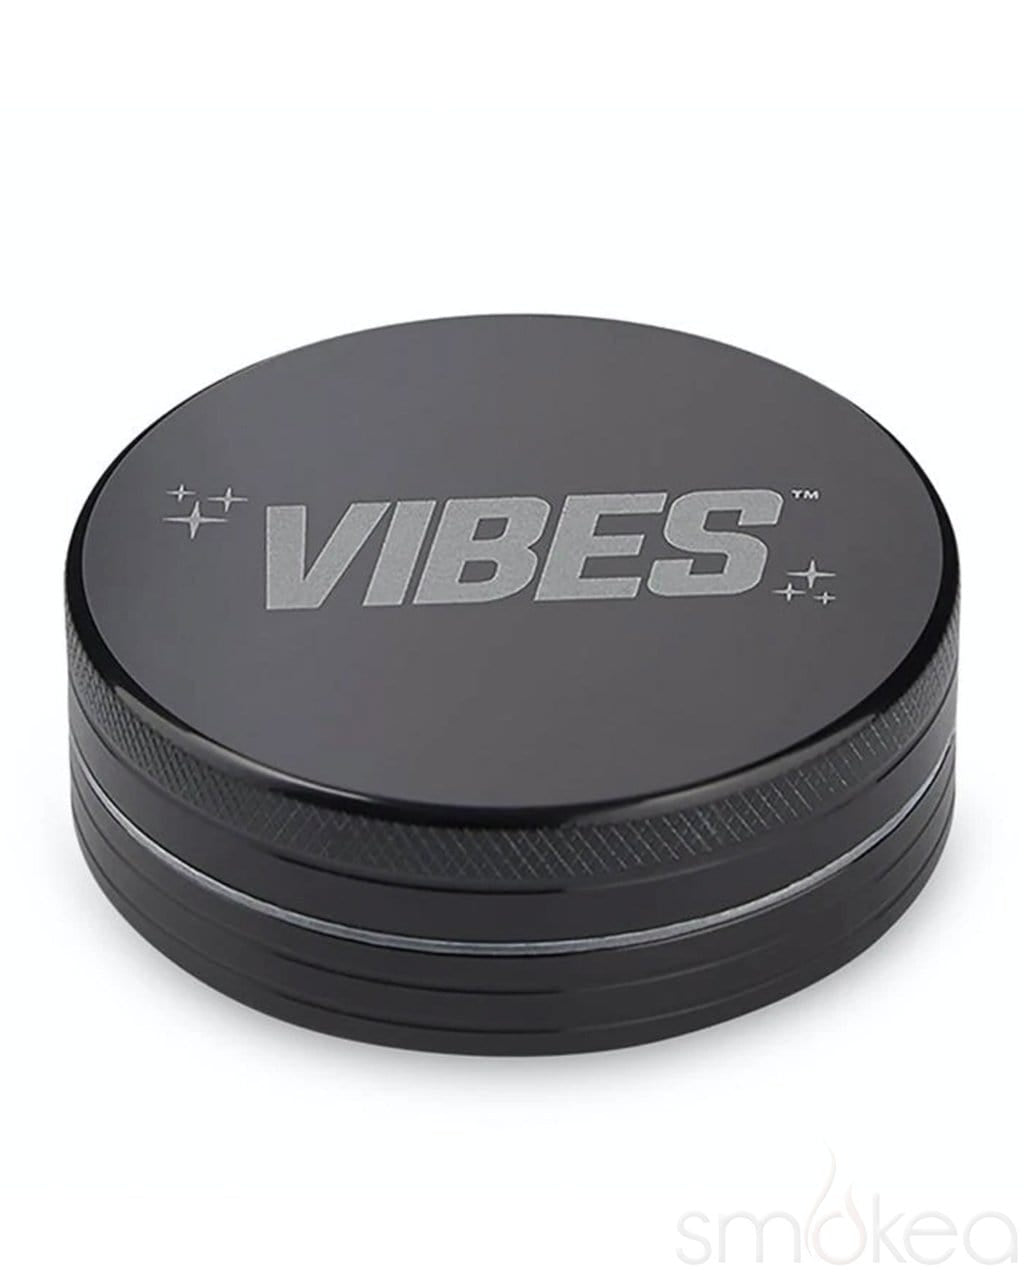 Vibes x Aerospaced Aluminum 2-Piece Grinder Black